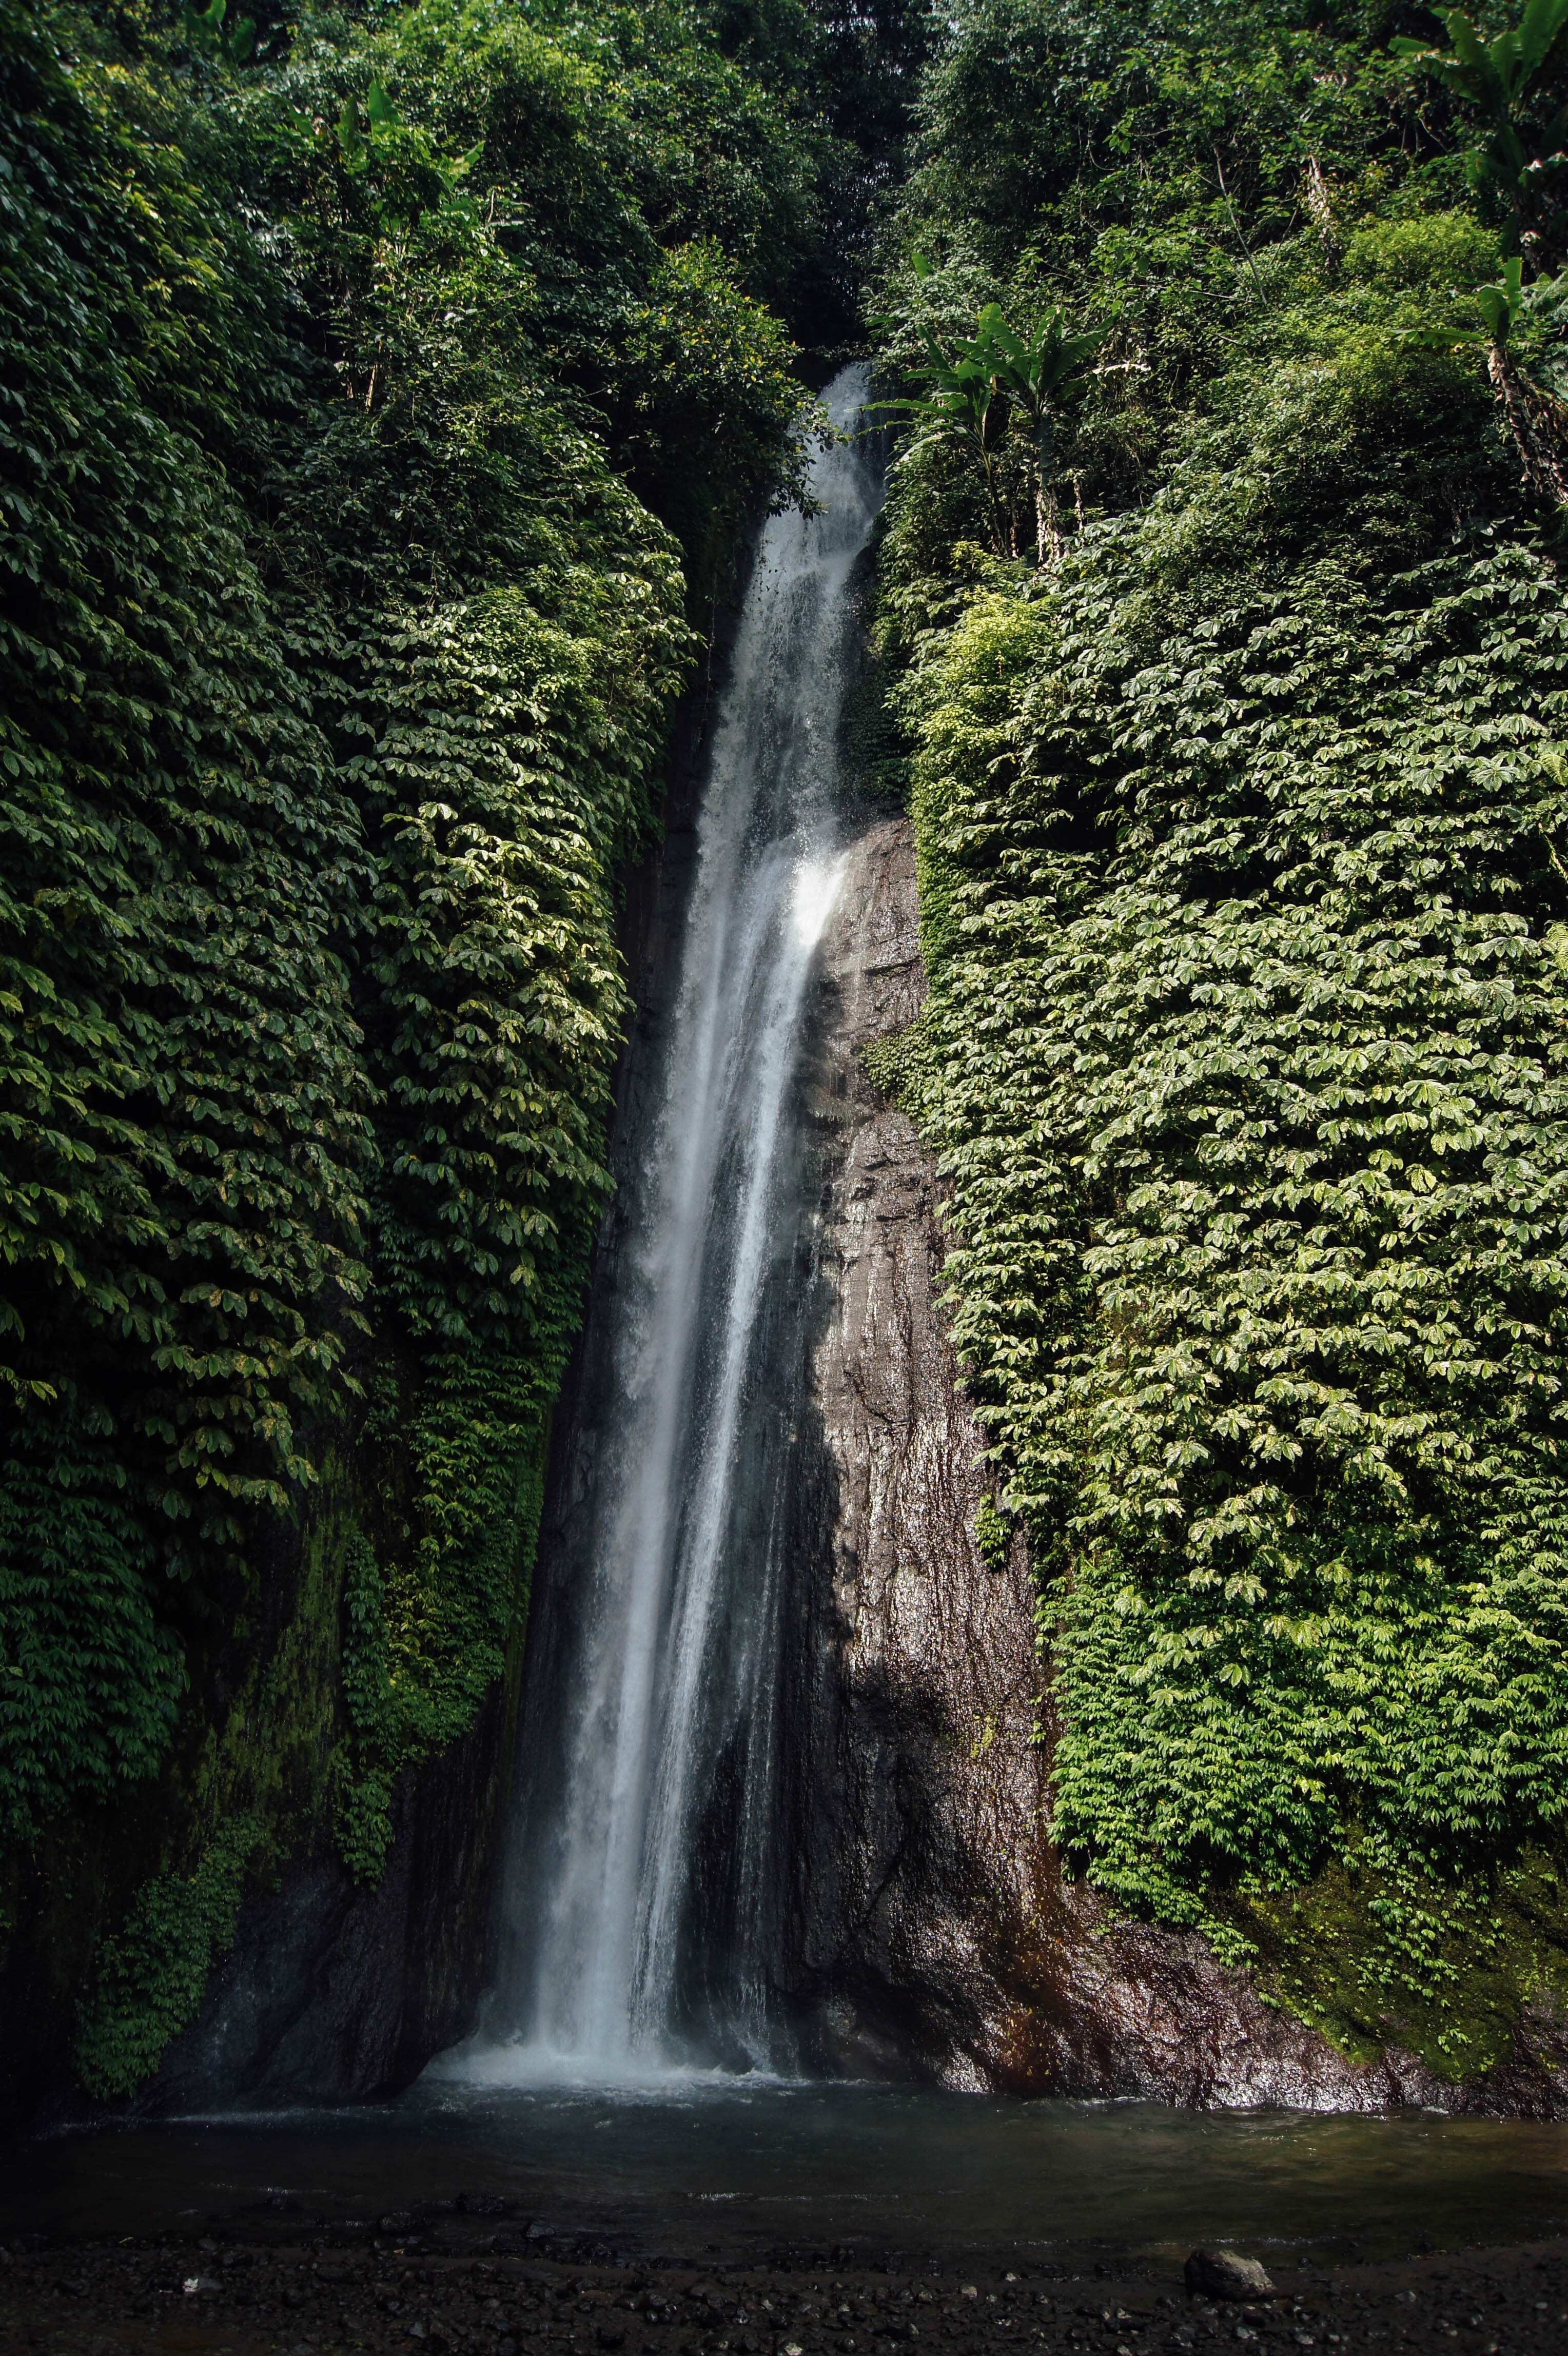 A tall waterfall tumbling down a steep rock face covered with green ivy